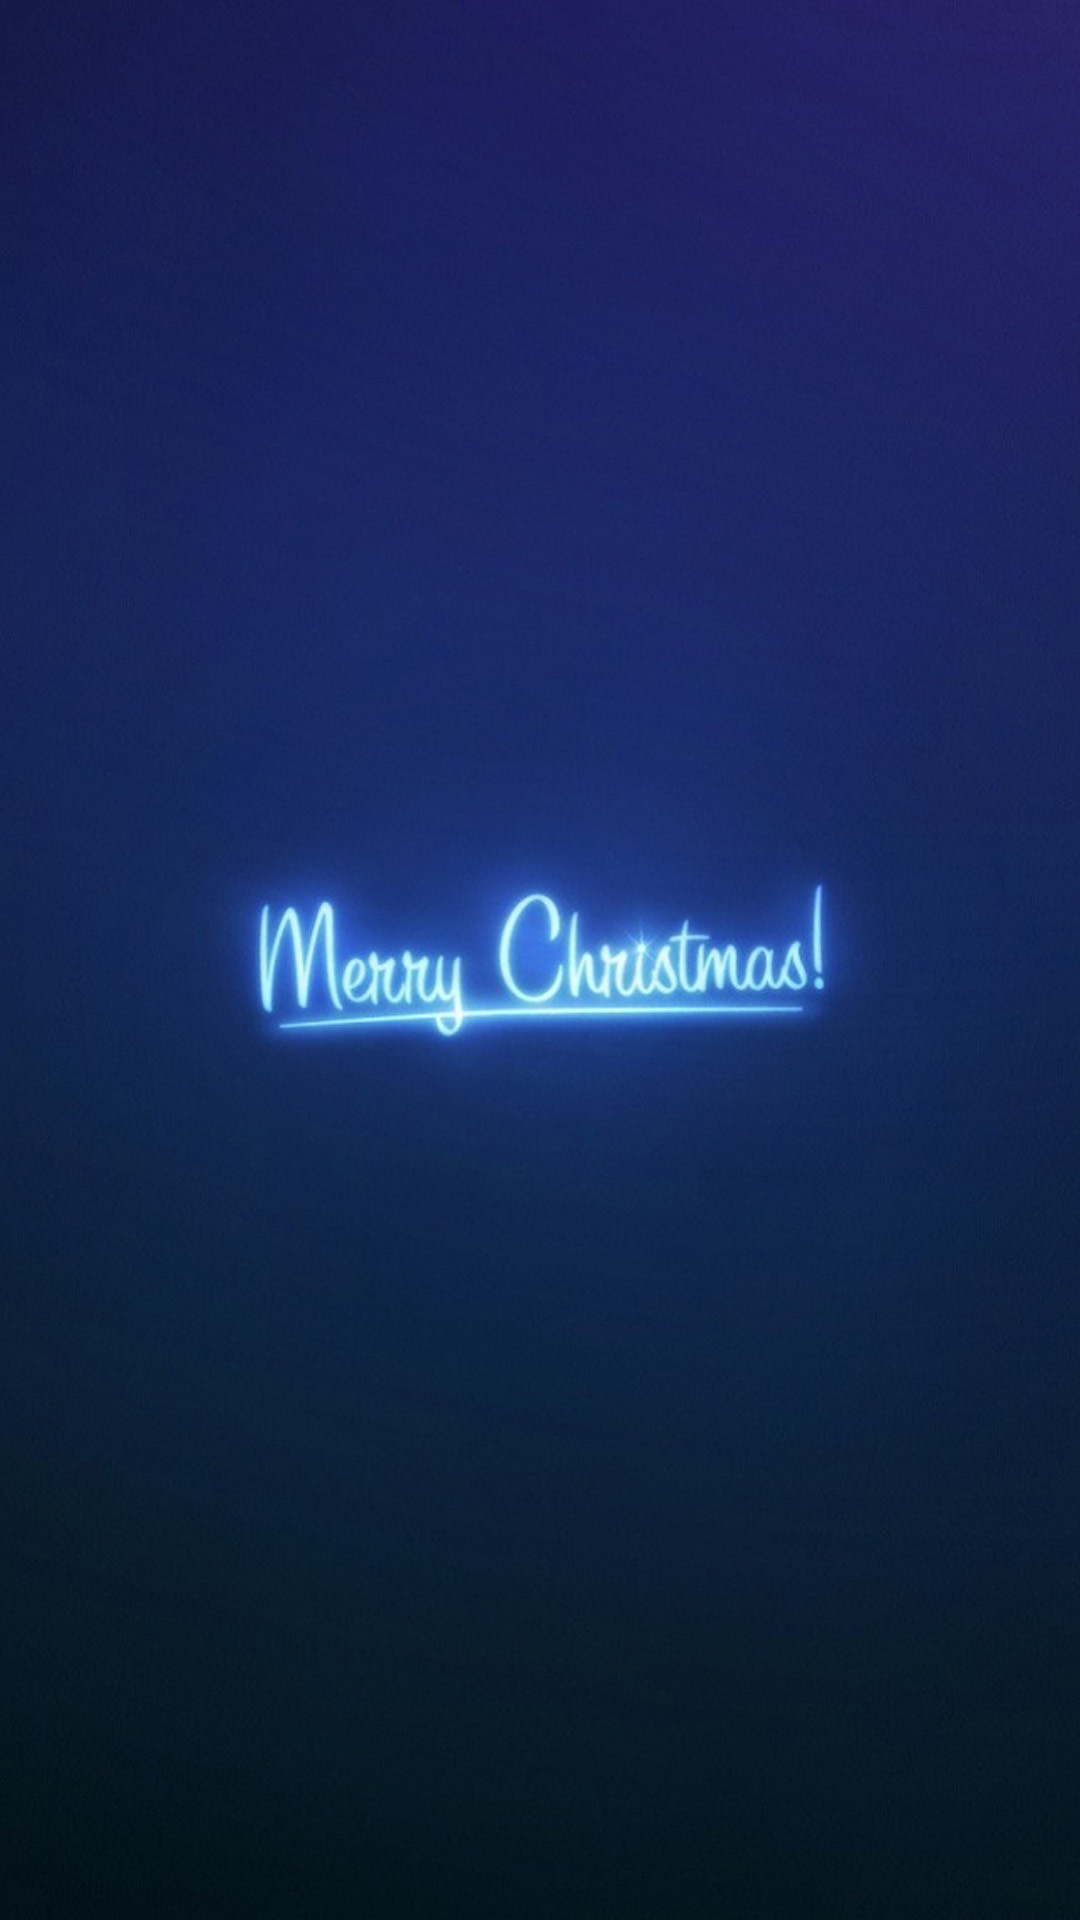 1080x1920 Merry Christmas Neon Blue Light Android Wallpaper